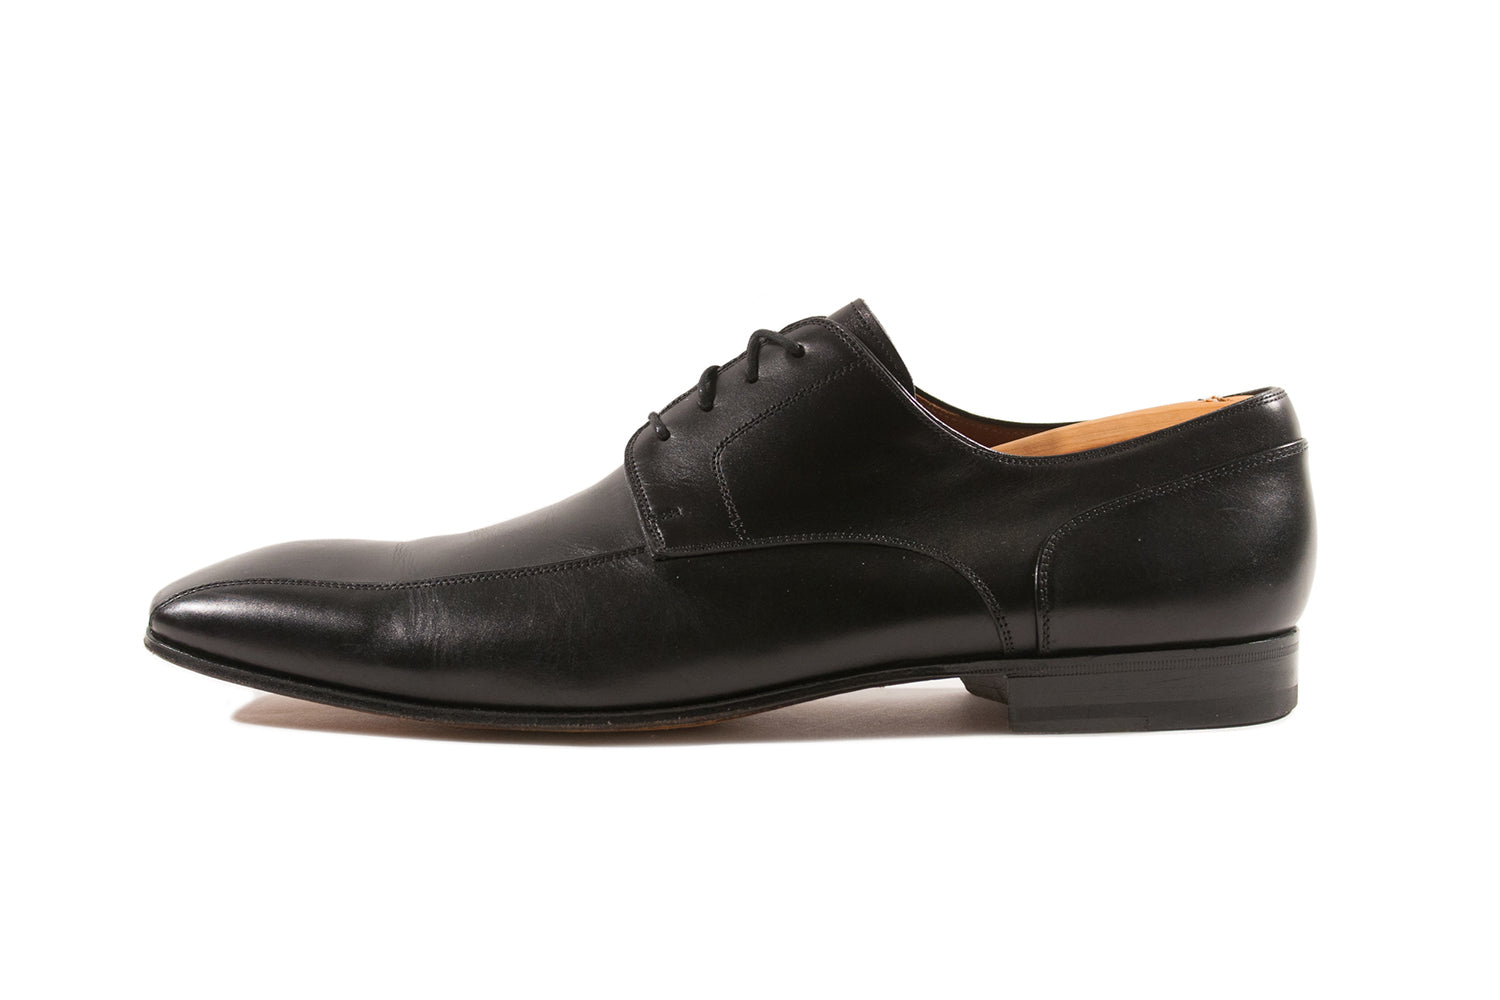 Magnanni Black Leather Shoes. Luxmrkt.com Menswear Consignment Edmonton.